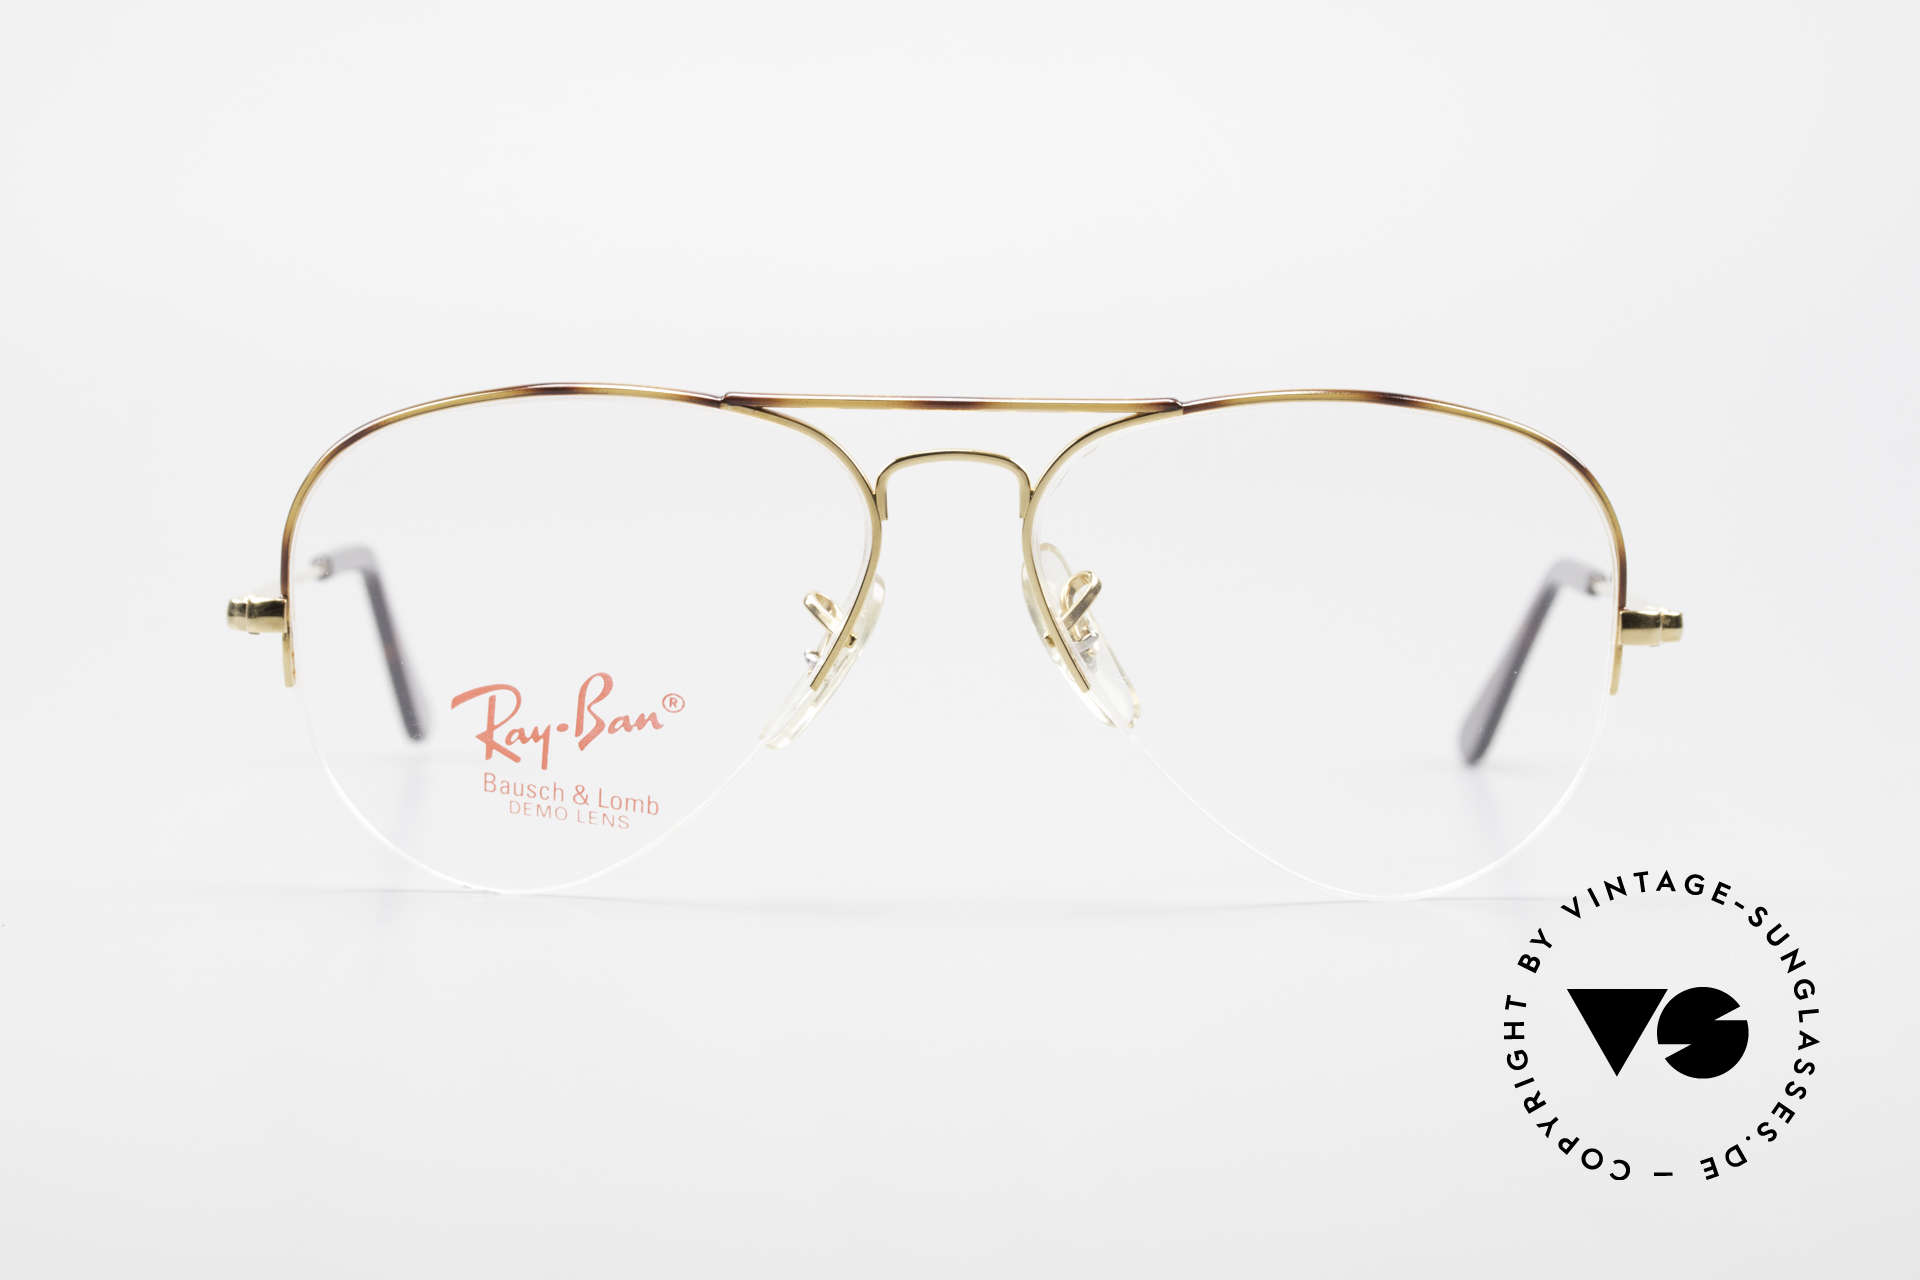 Ray Ban Aviator Half Rimless Frame Tortuga, very rare 'Nylor Edition' (semi rimless frame), Made for Men and Women